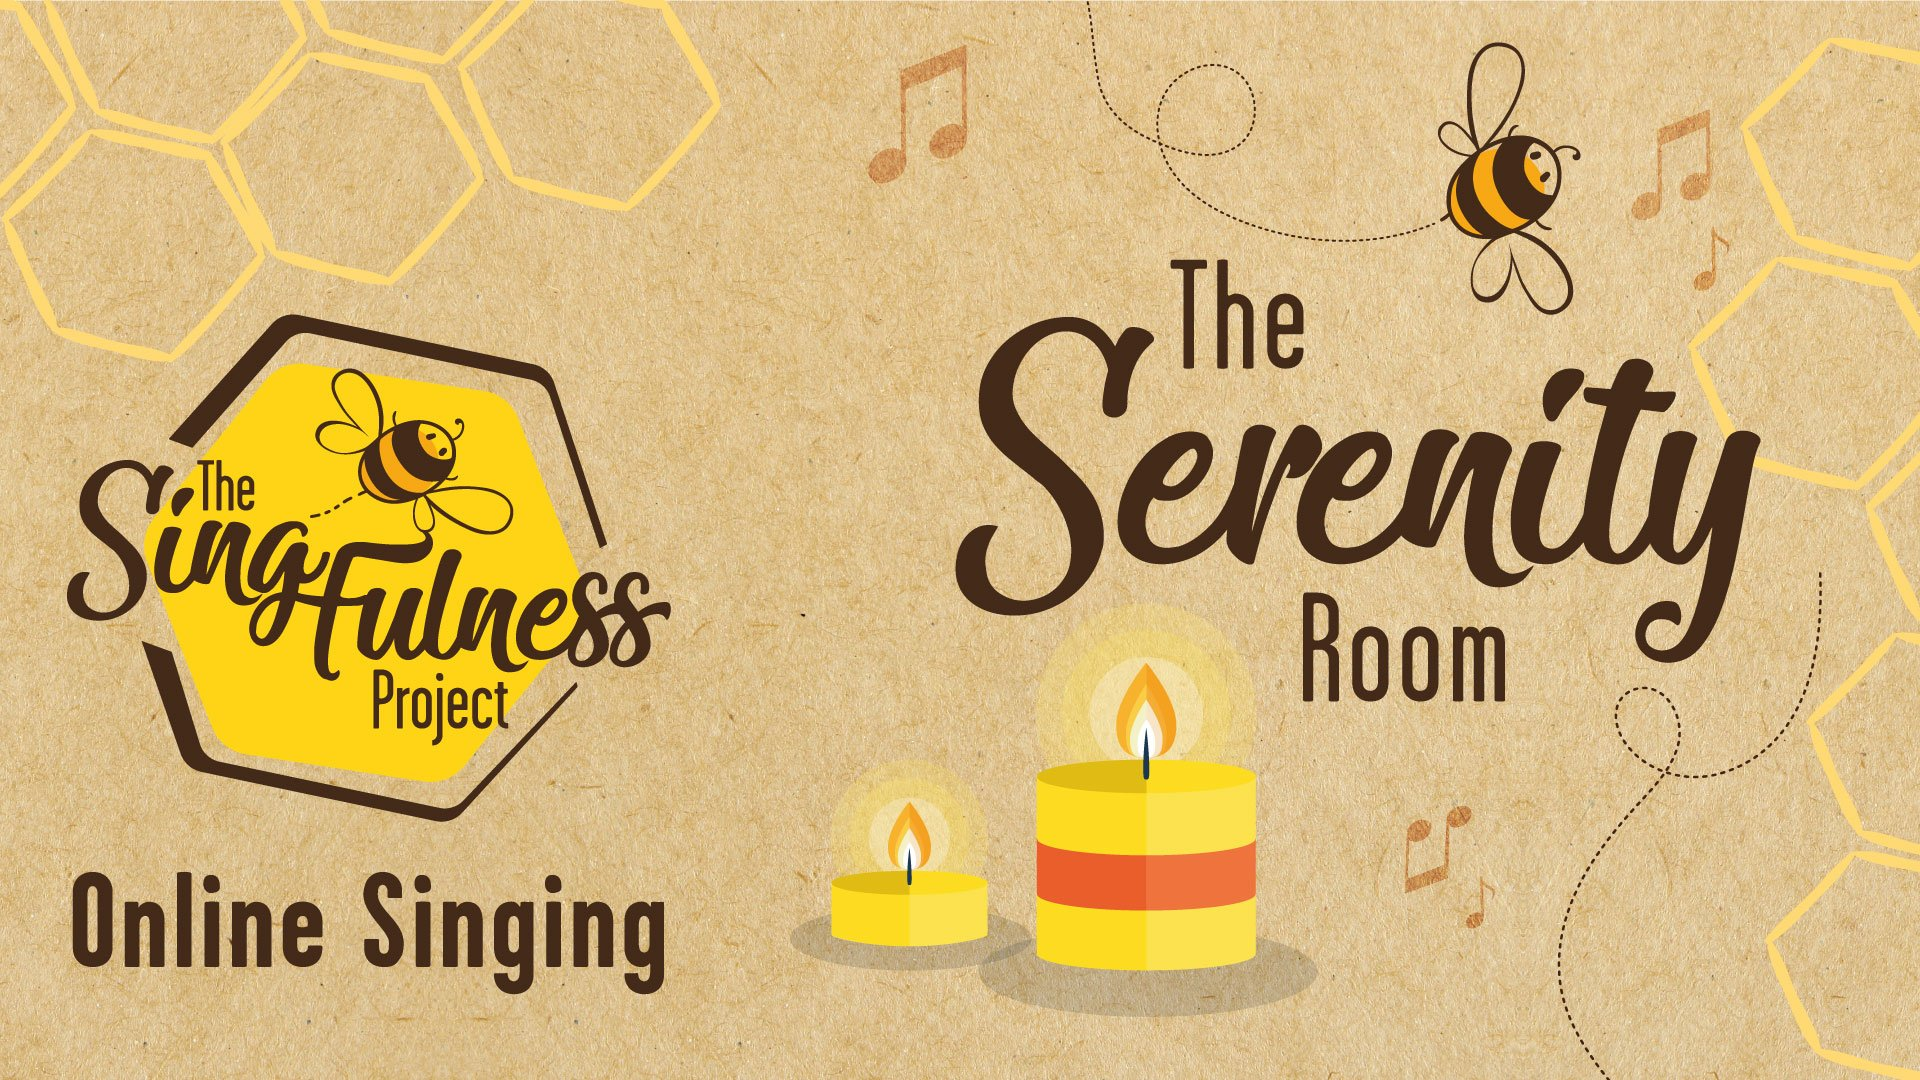 Singfulness-icons-FB-EVENT-SERENITY